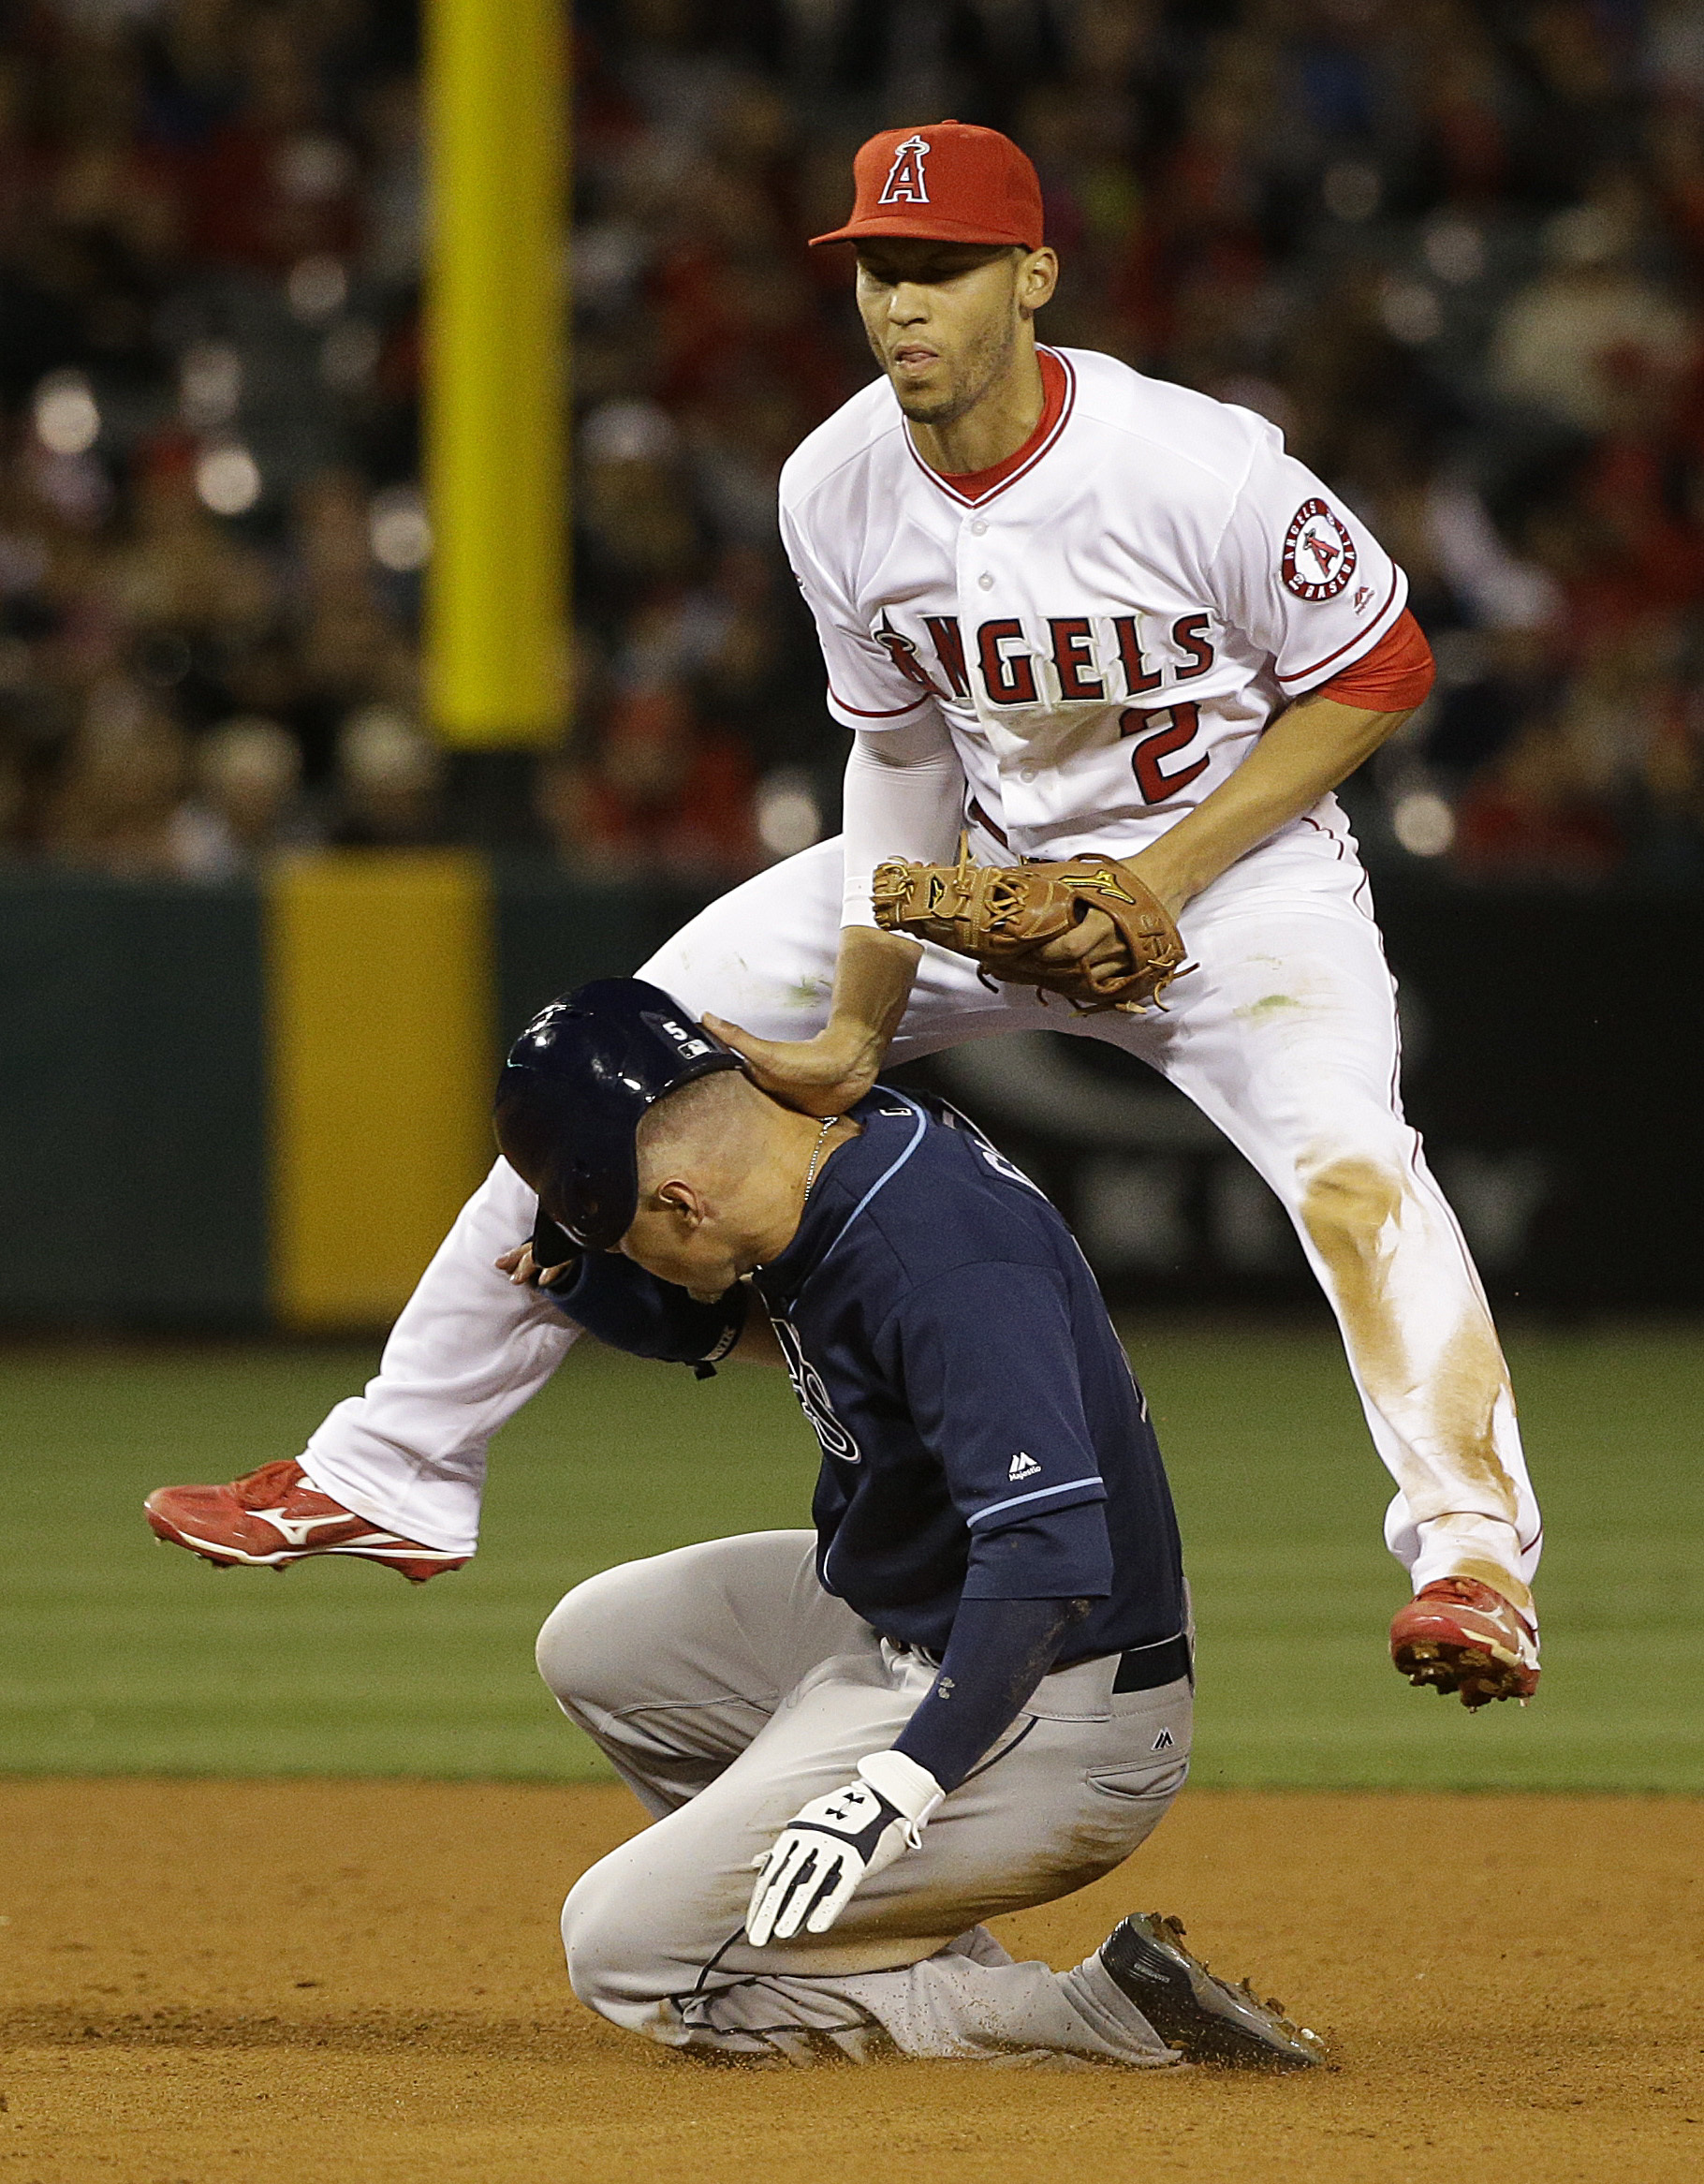 Los Angeles Angels' Andrelton Simmons, top, watches his throw to first base after forcing out Tampa Bay Rays' Brandon Guyer during the fifth inning of a baseball game, Friday, May 6, 2016, in Anaheim, Calif. (AP Photo/Jae C. Hong)